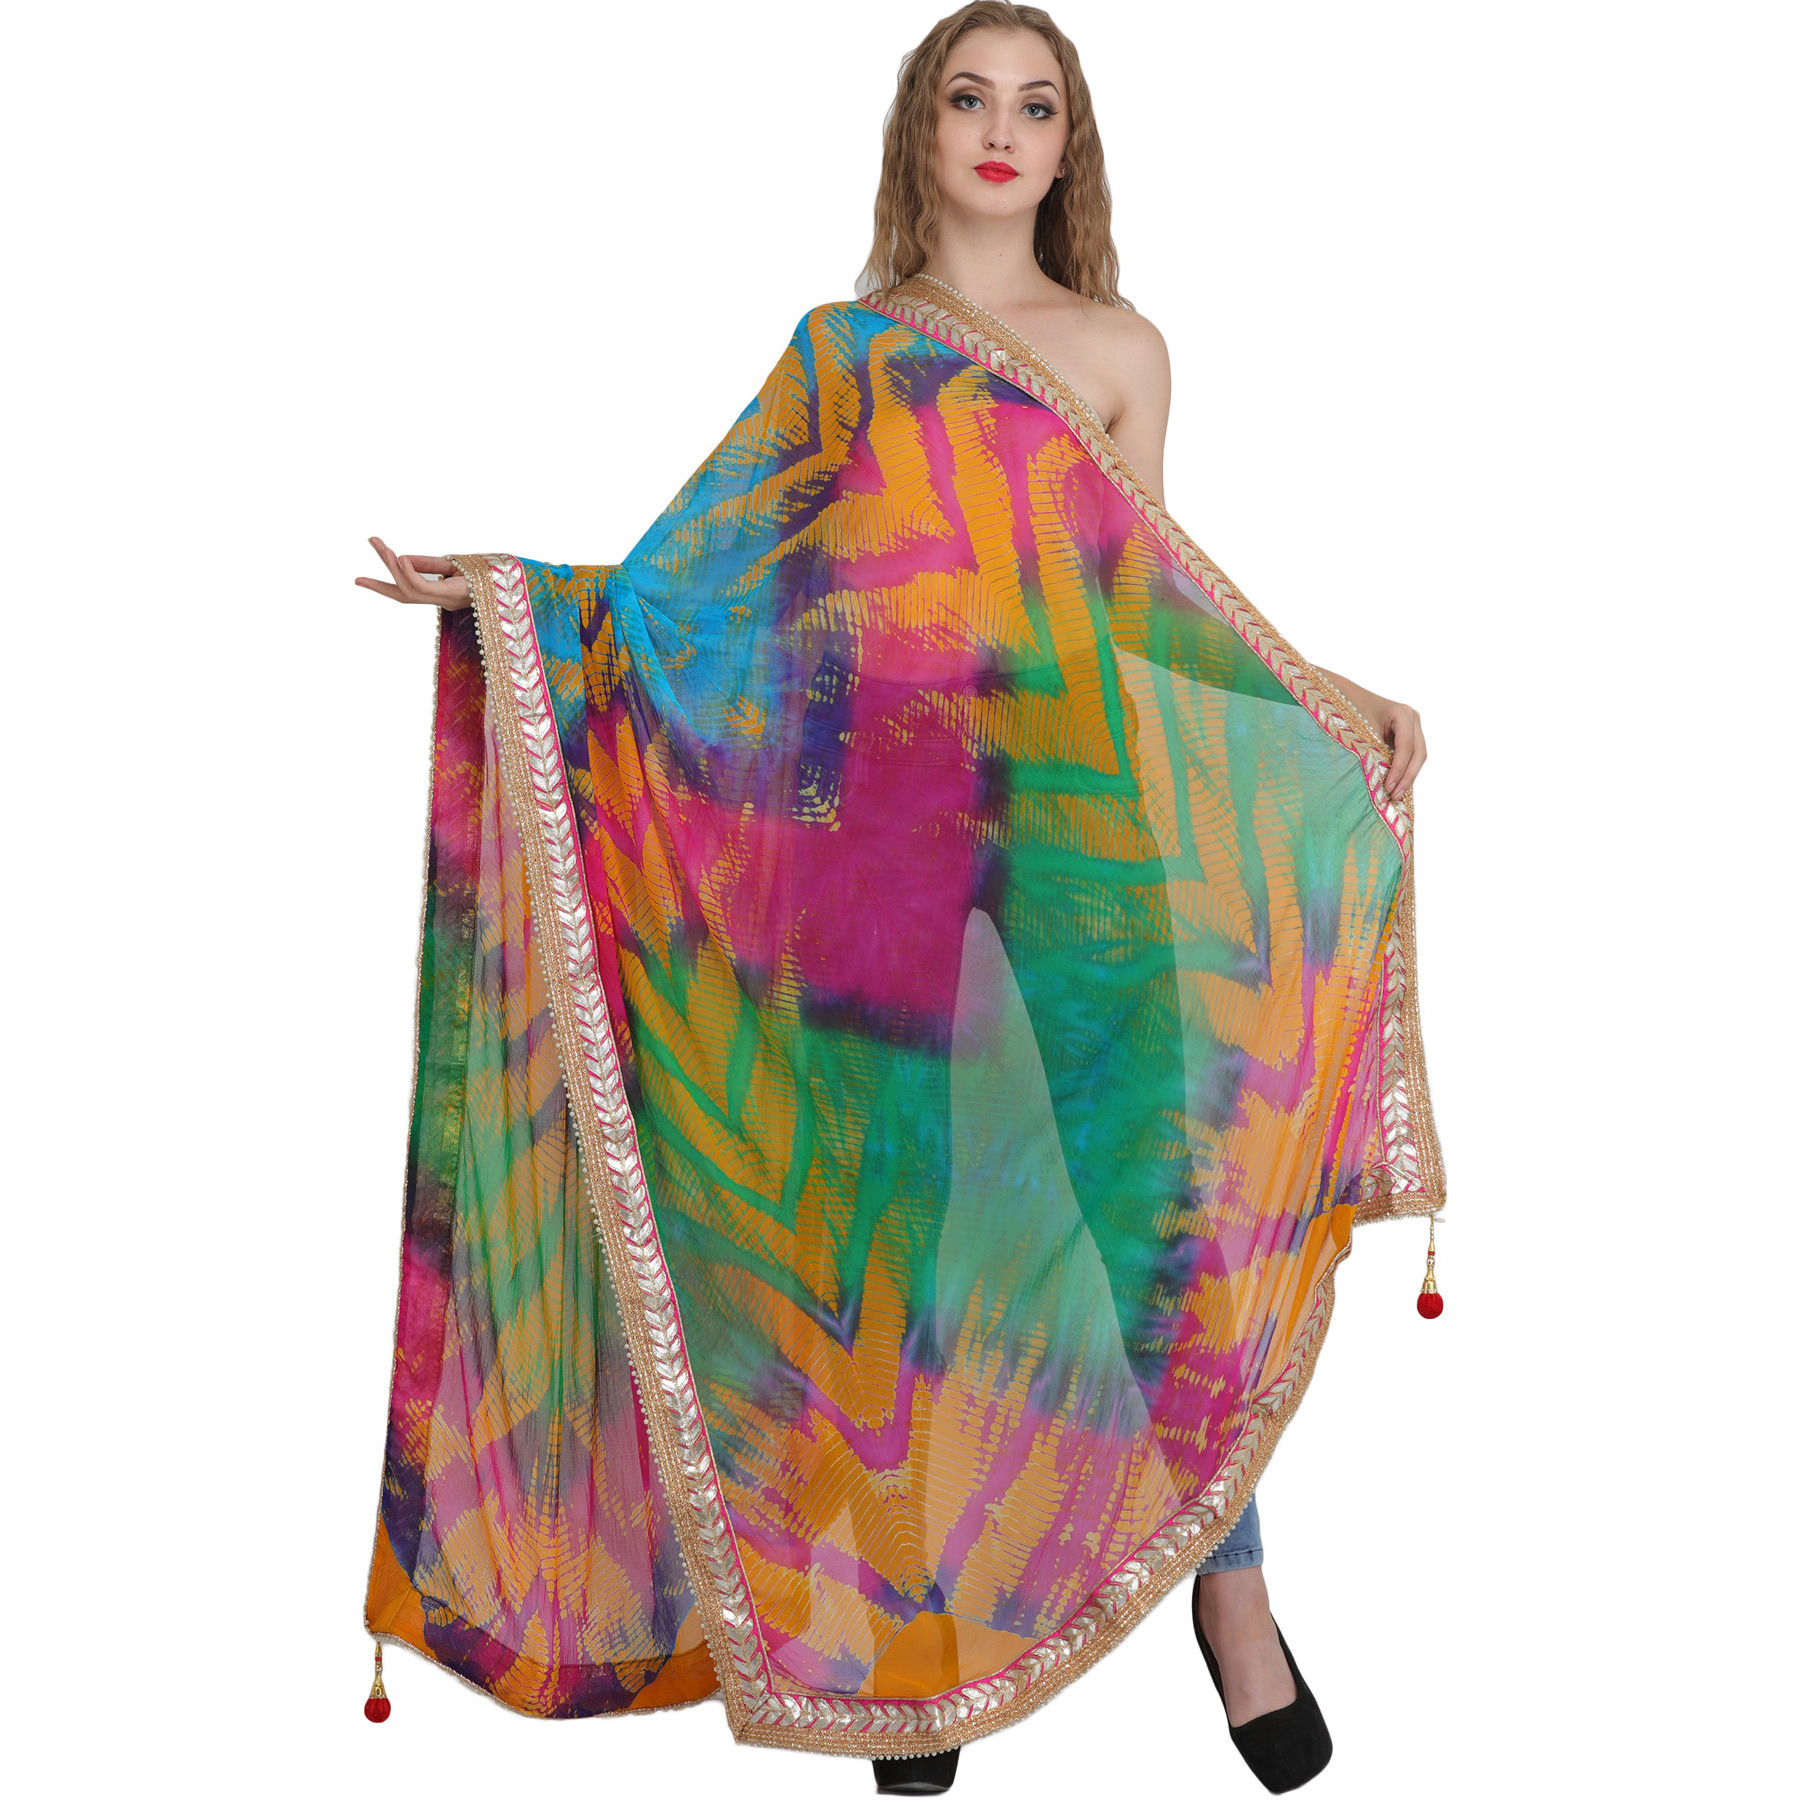 Multicolored Tie-Dye Printed Dupatta from Jodhpur with Gota Border